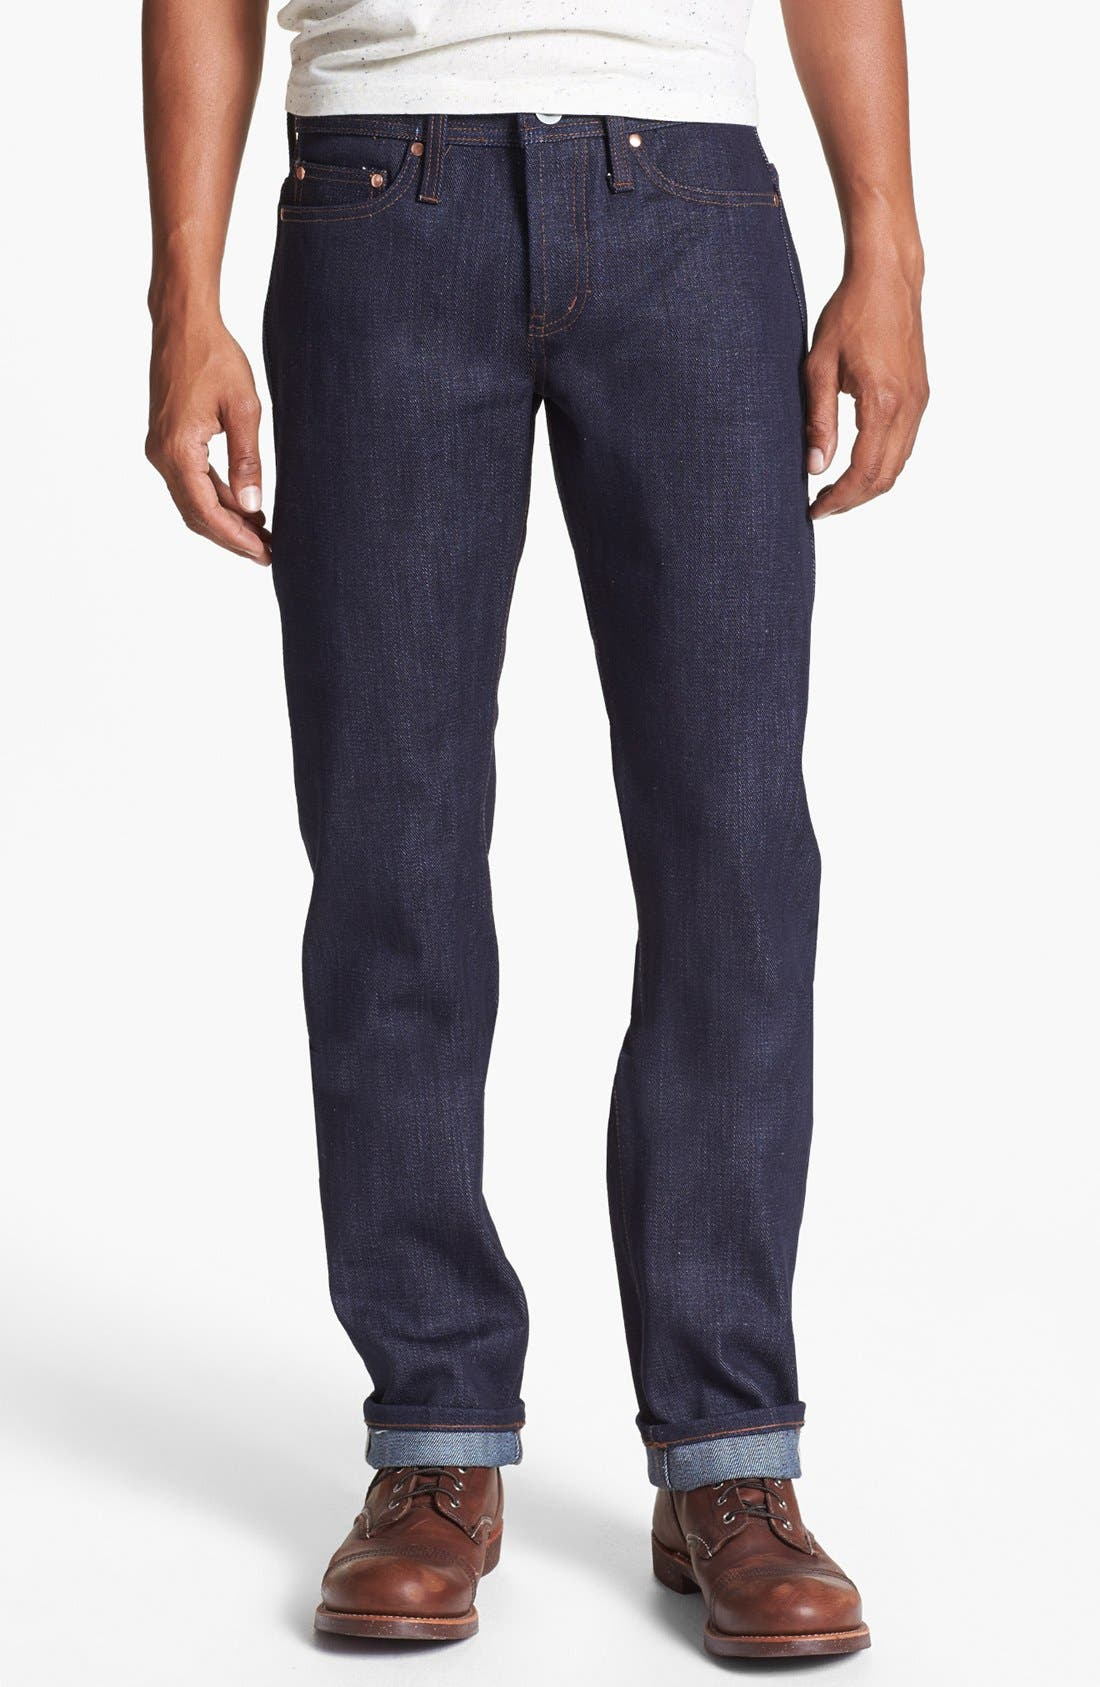 THE UNBRANDED BRAND,                             'UB221' Slim Fit Raw Selvedge Jeans,                             Main thumbnail 1, color,                             401